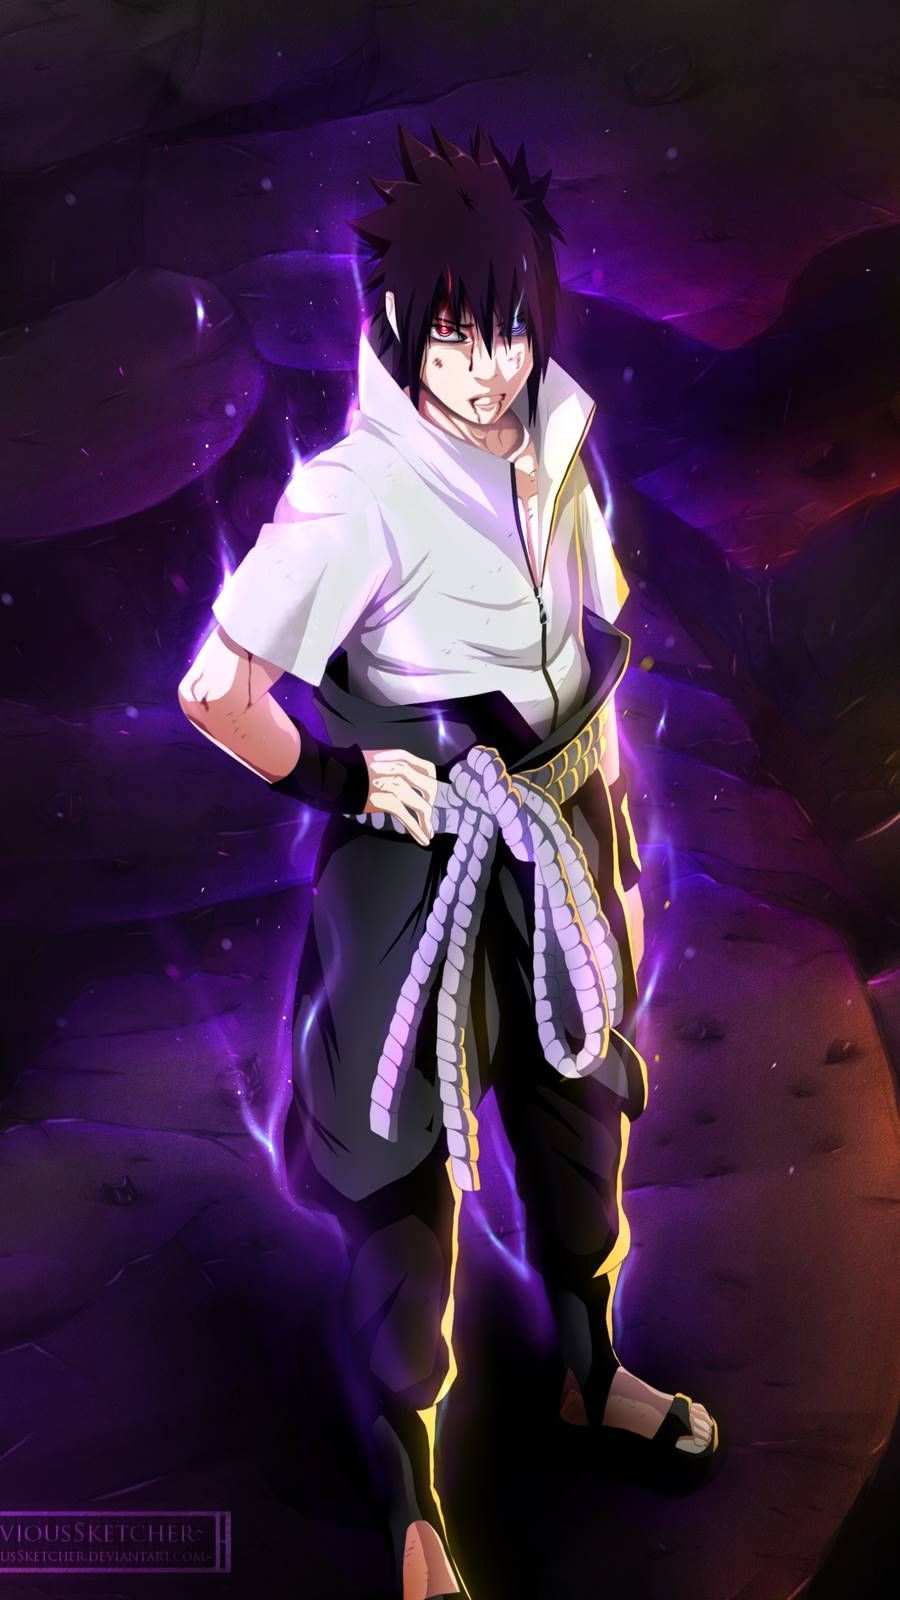 Sasuke Uchiha Para Celular With Images Naruto And Sasuke Wallpaper Naruto Shippuden Anime Naruto Vs Sasuke